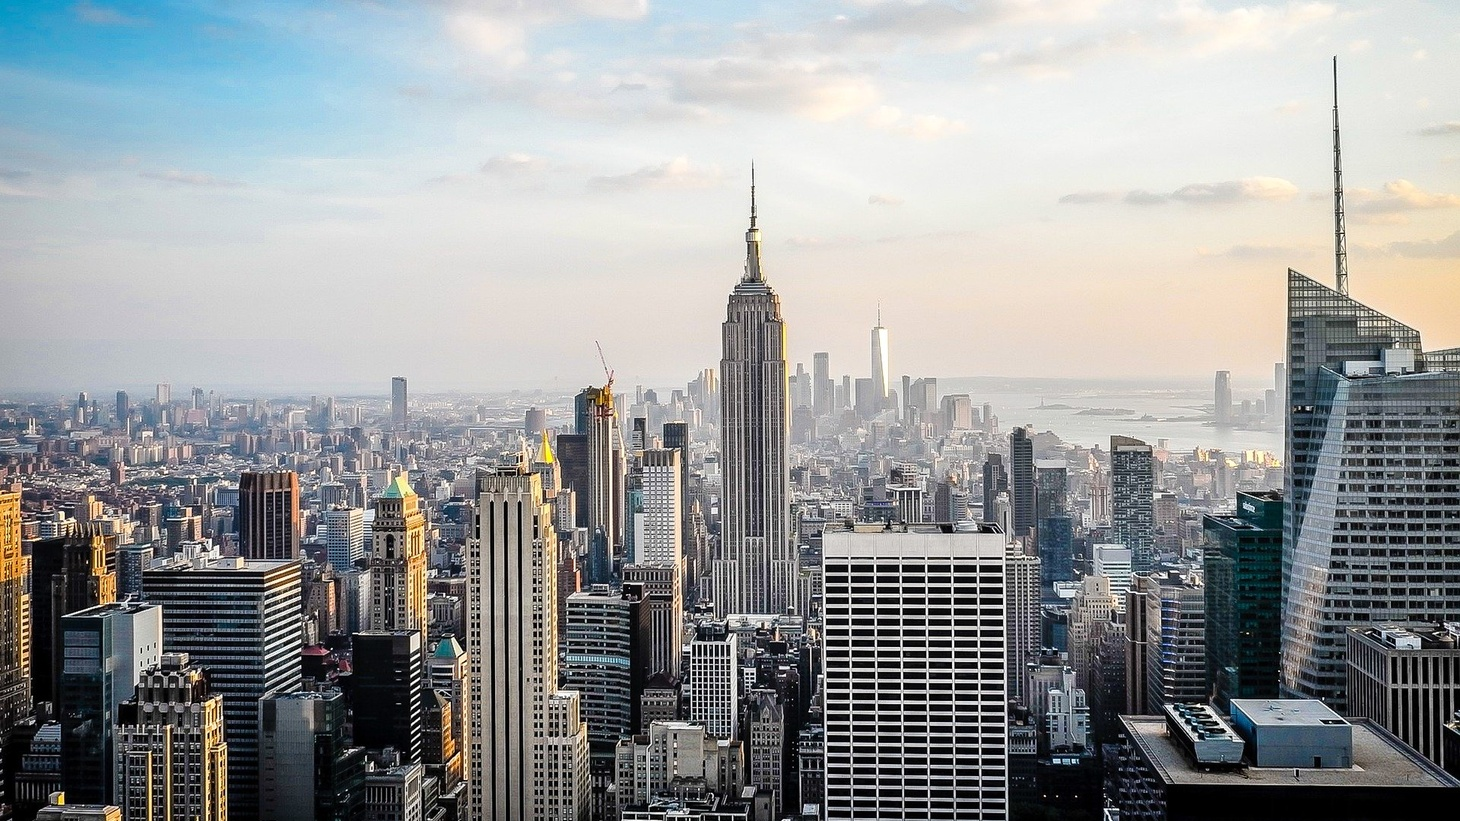 New York City has more COVID-19 cases than any other city in the United States. Can it survive the pandemic?